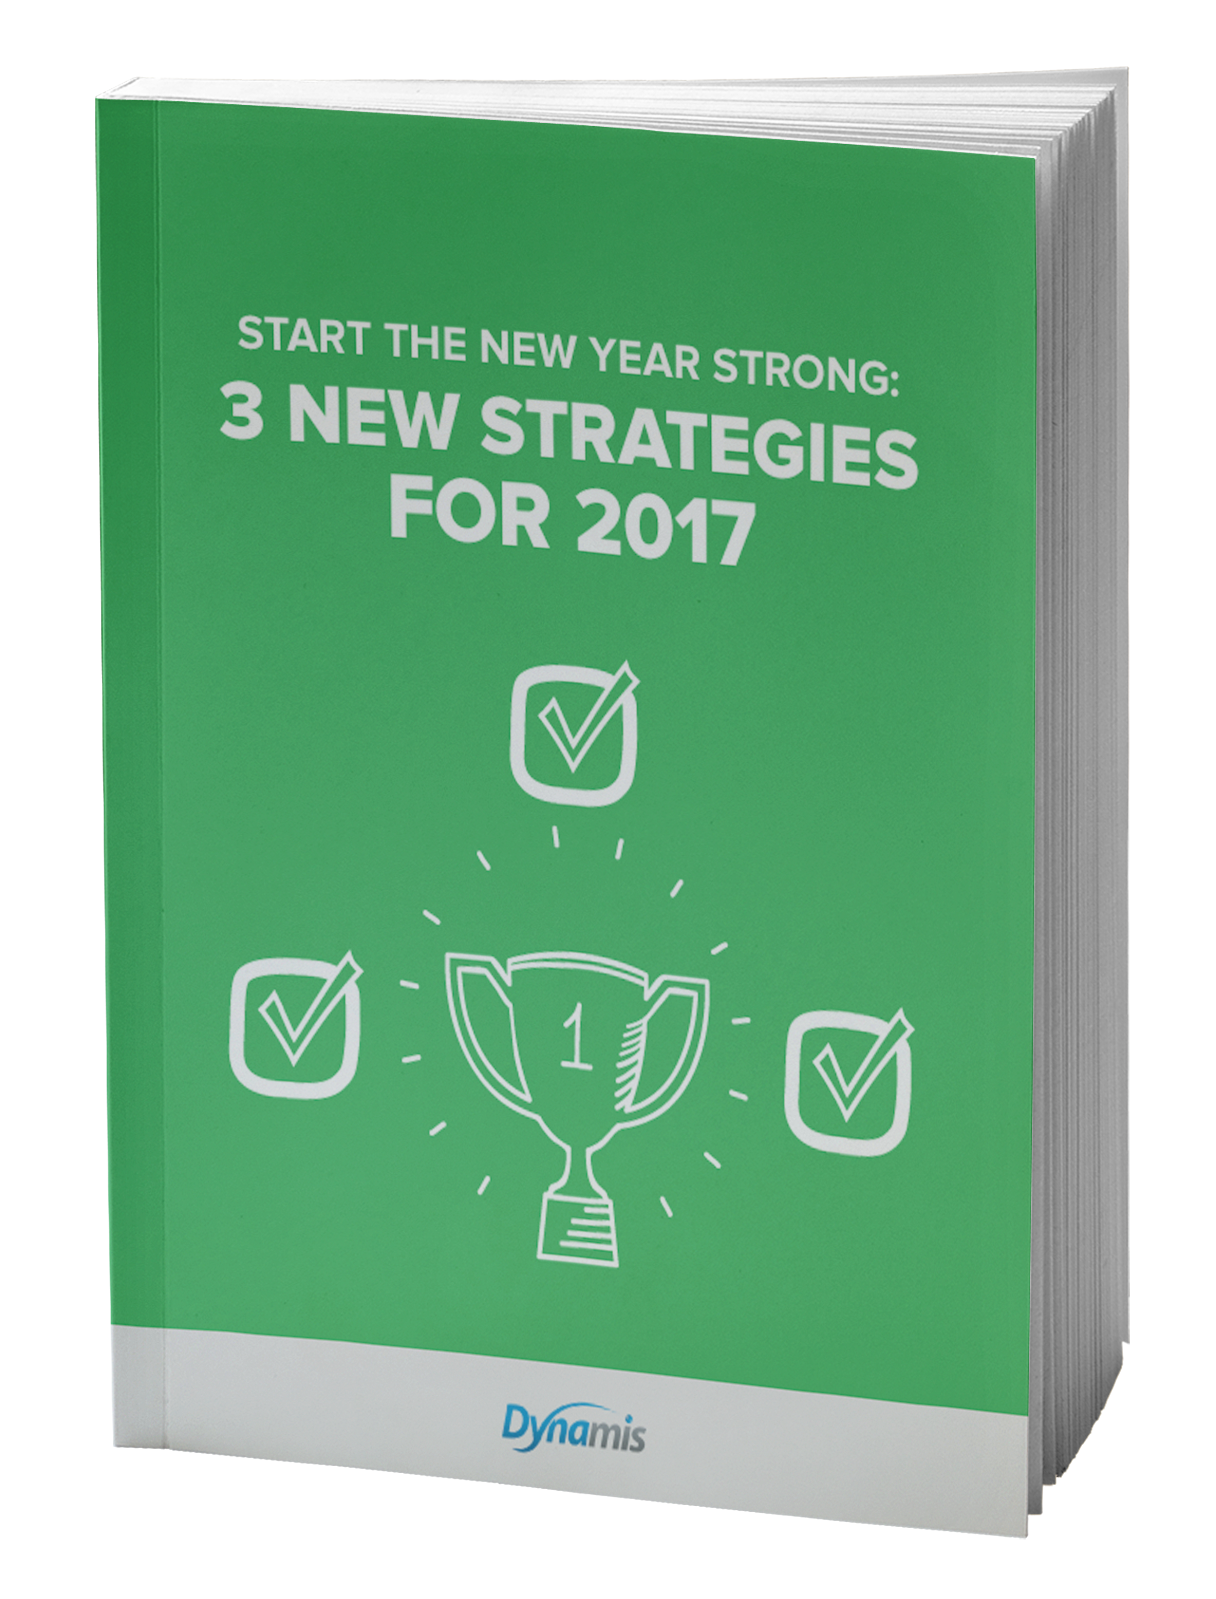 Start the New Year Strong: 3 New Strategies for 2017